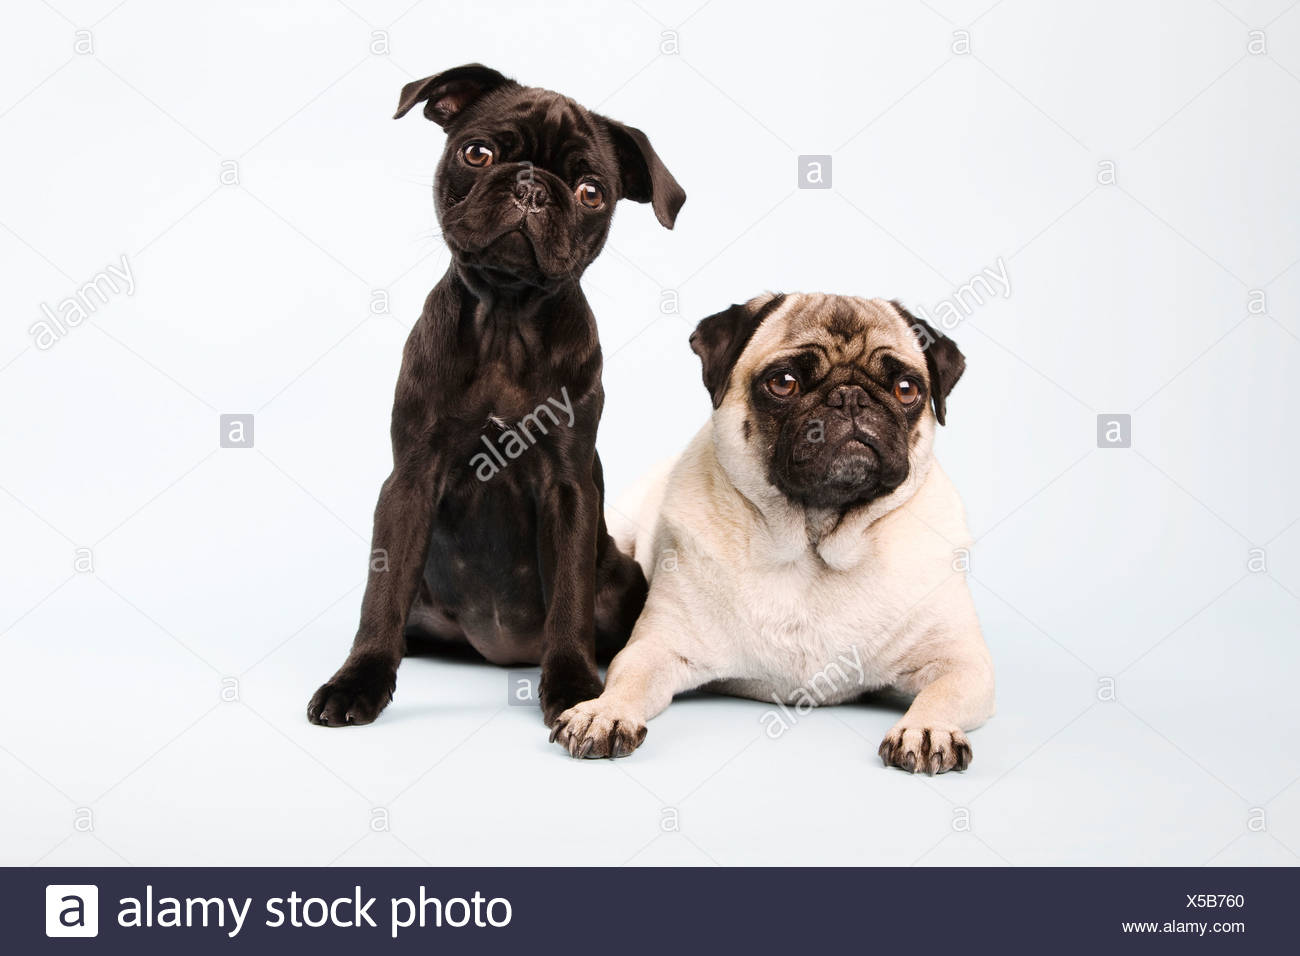 Pug dogs sitting down, portrait - Stock Image